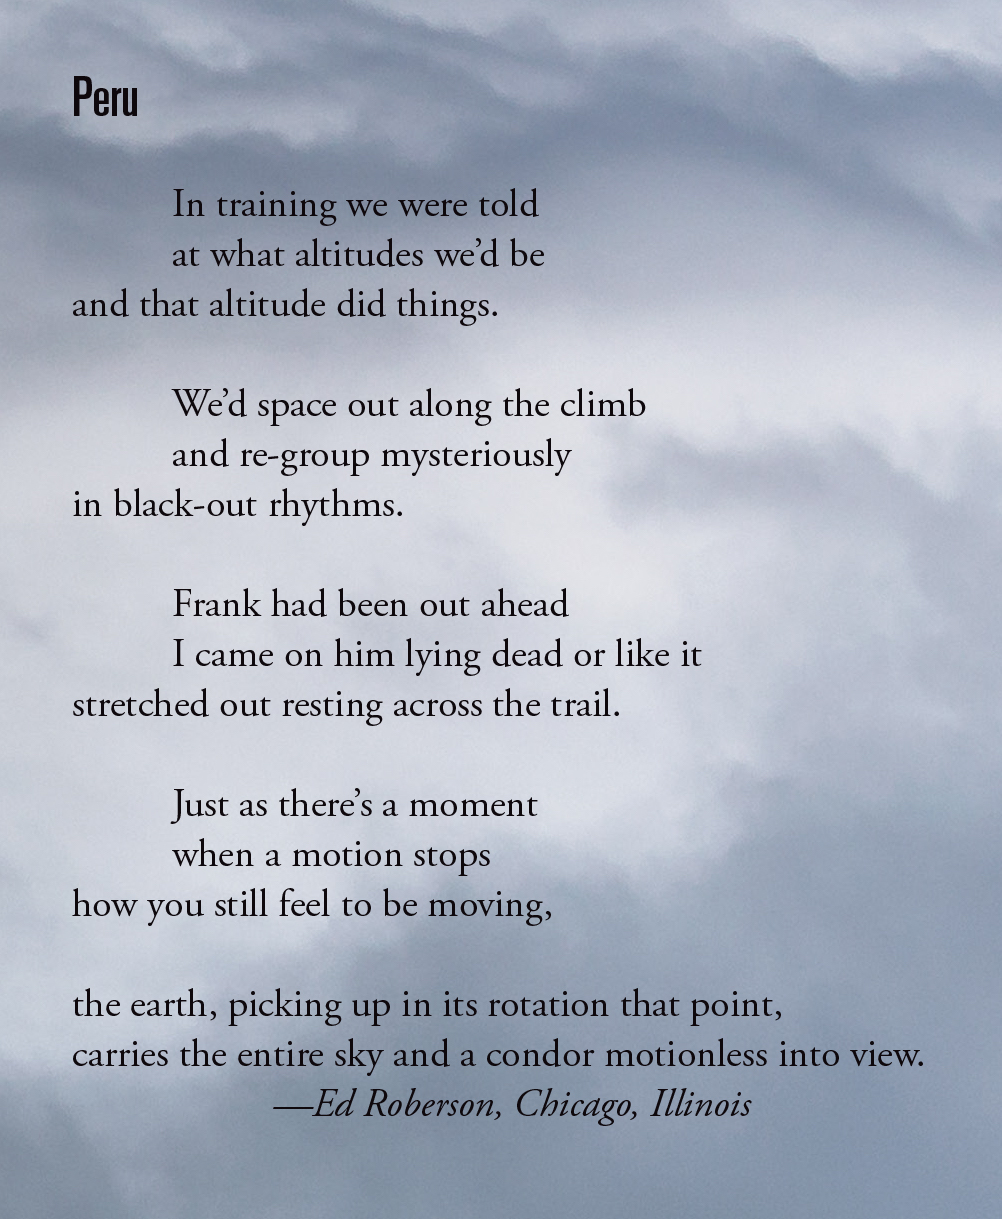 This poem first appeared in Alpinist 58 (Summer 2017).